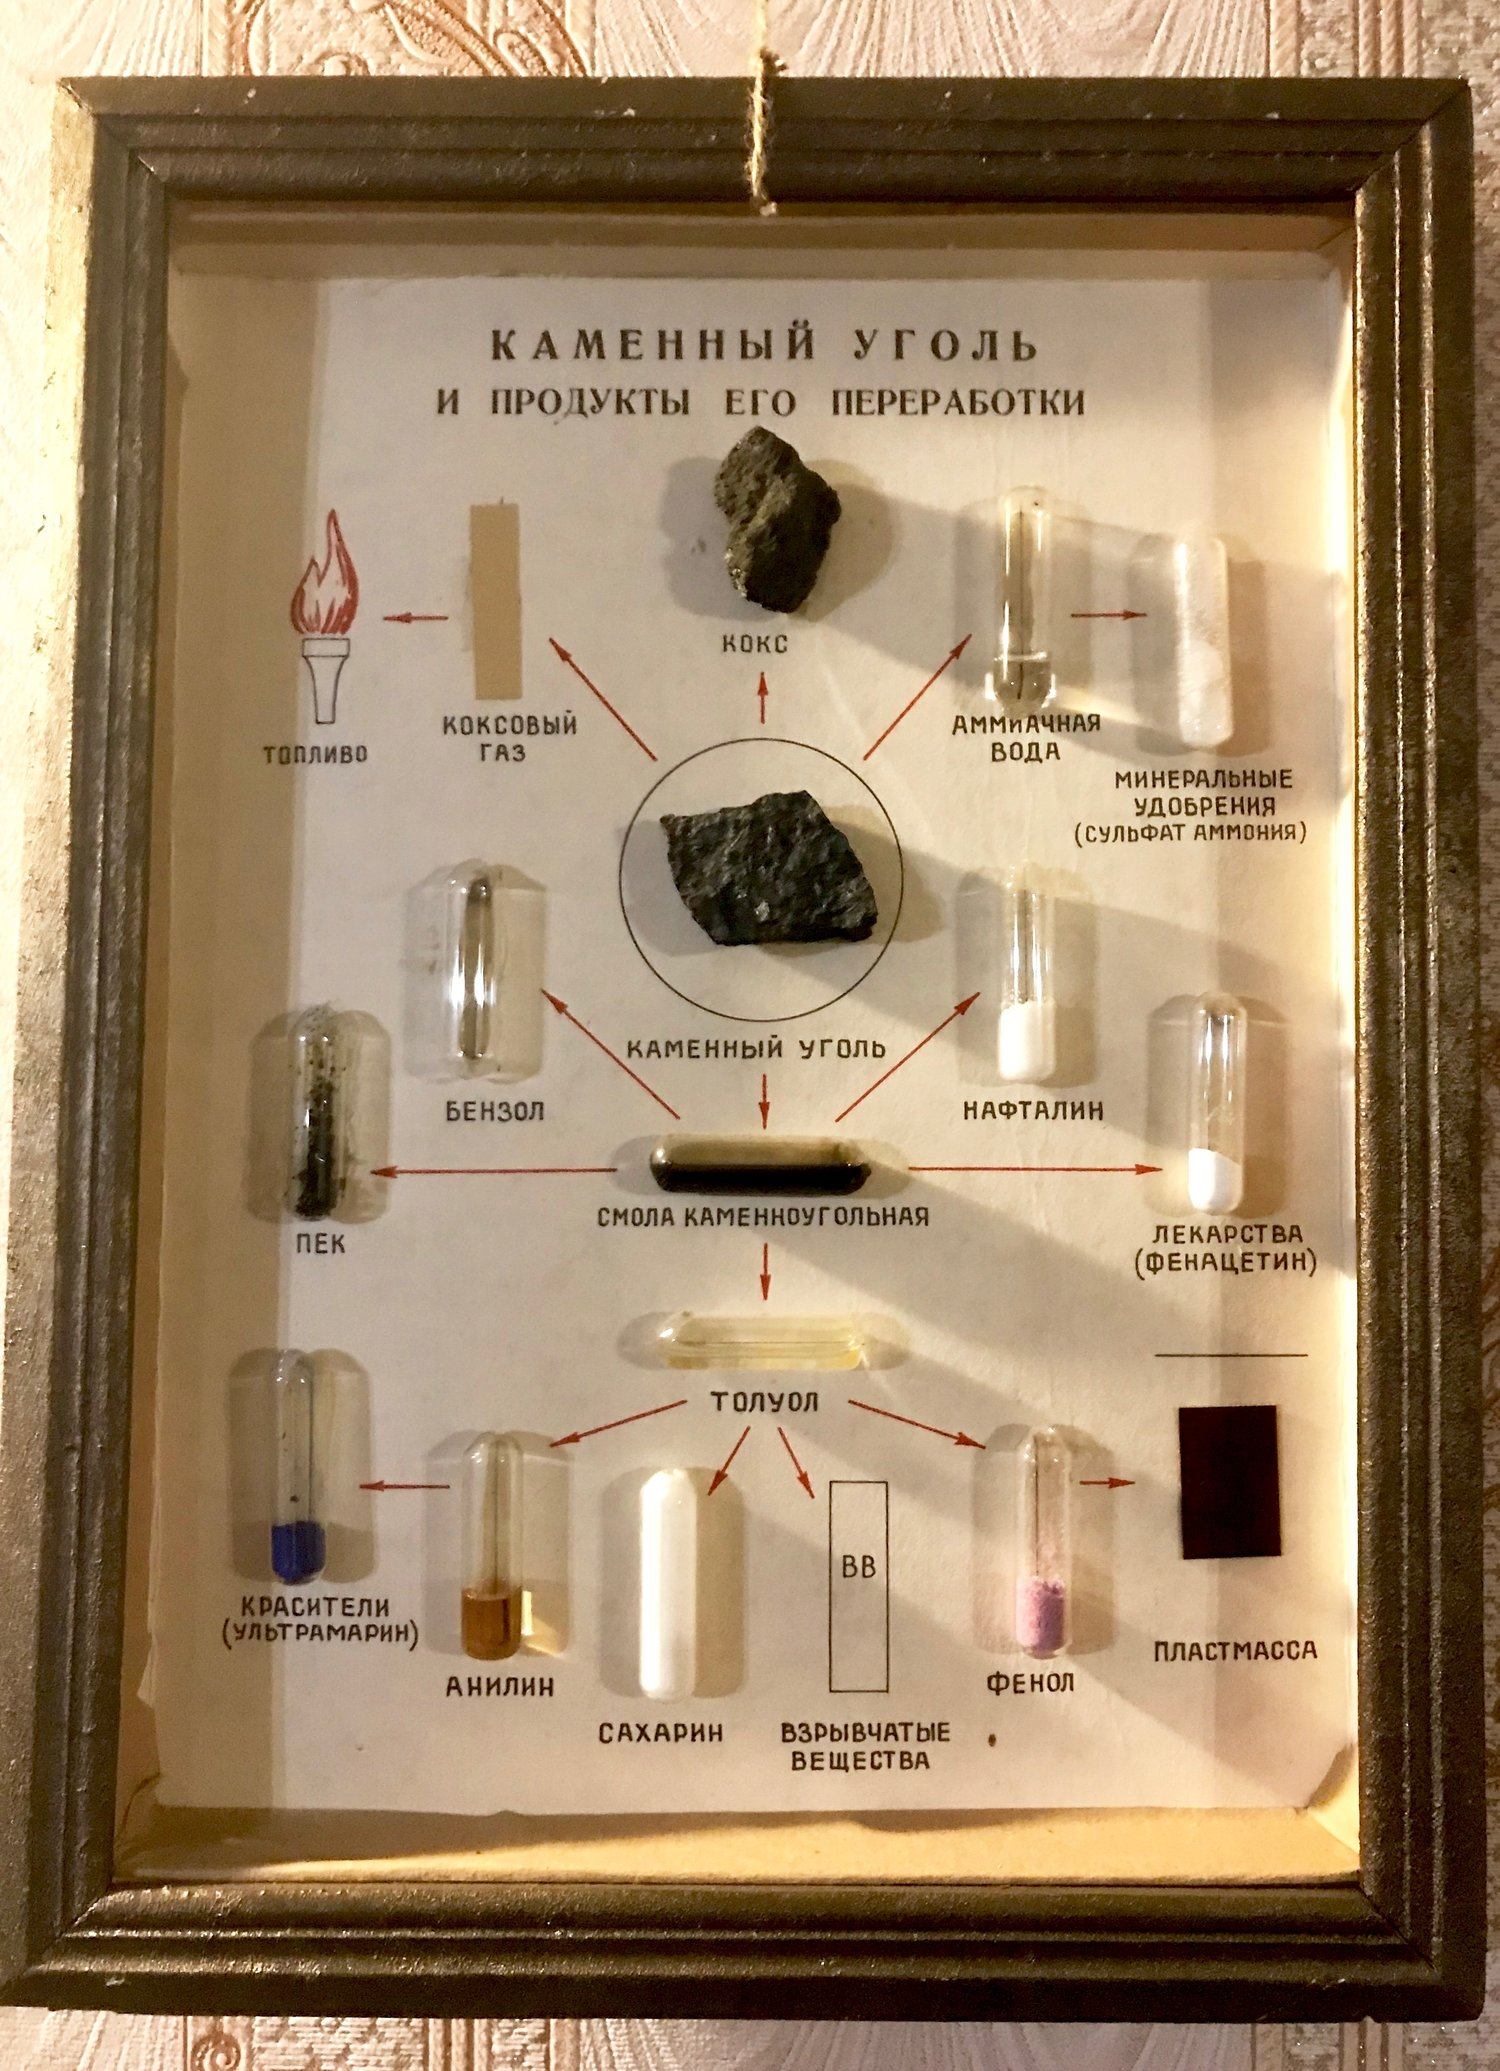 Soviet display of coal and its chemical derivatives